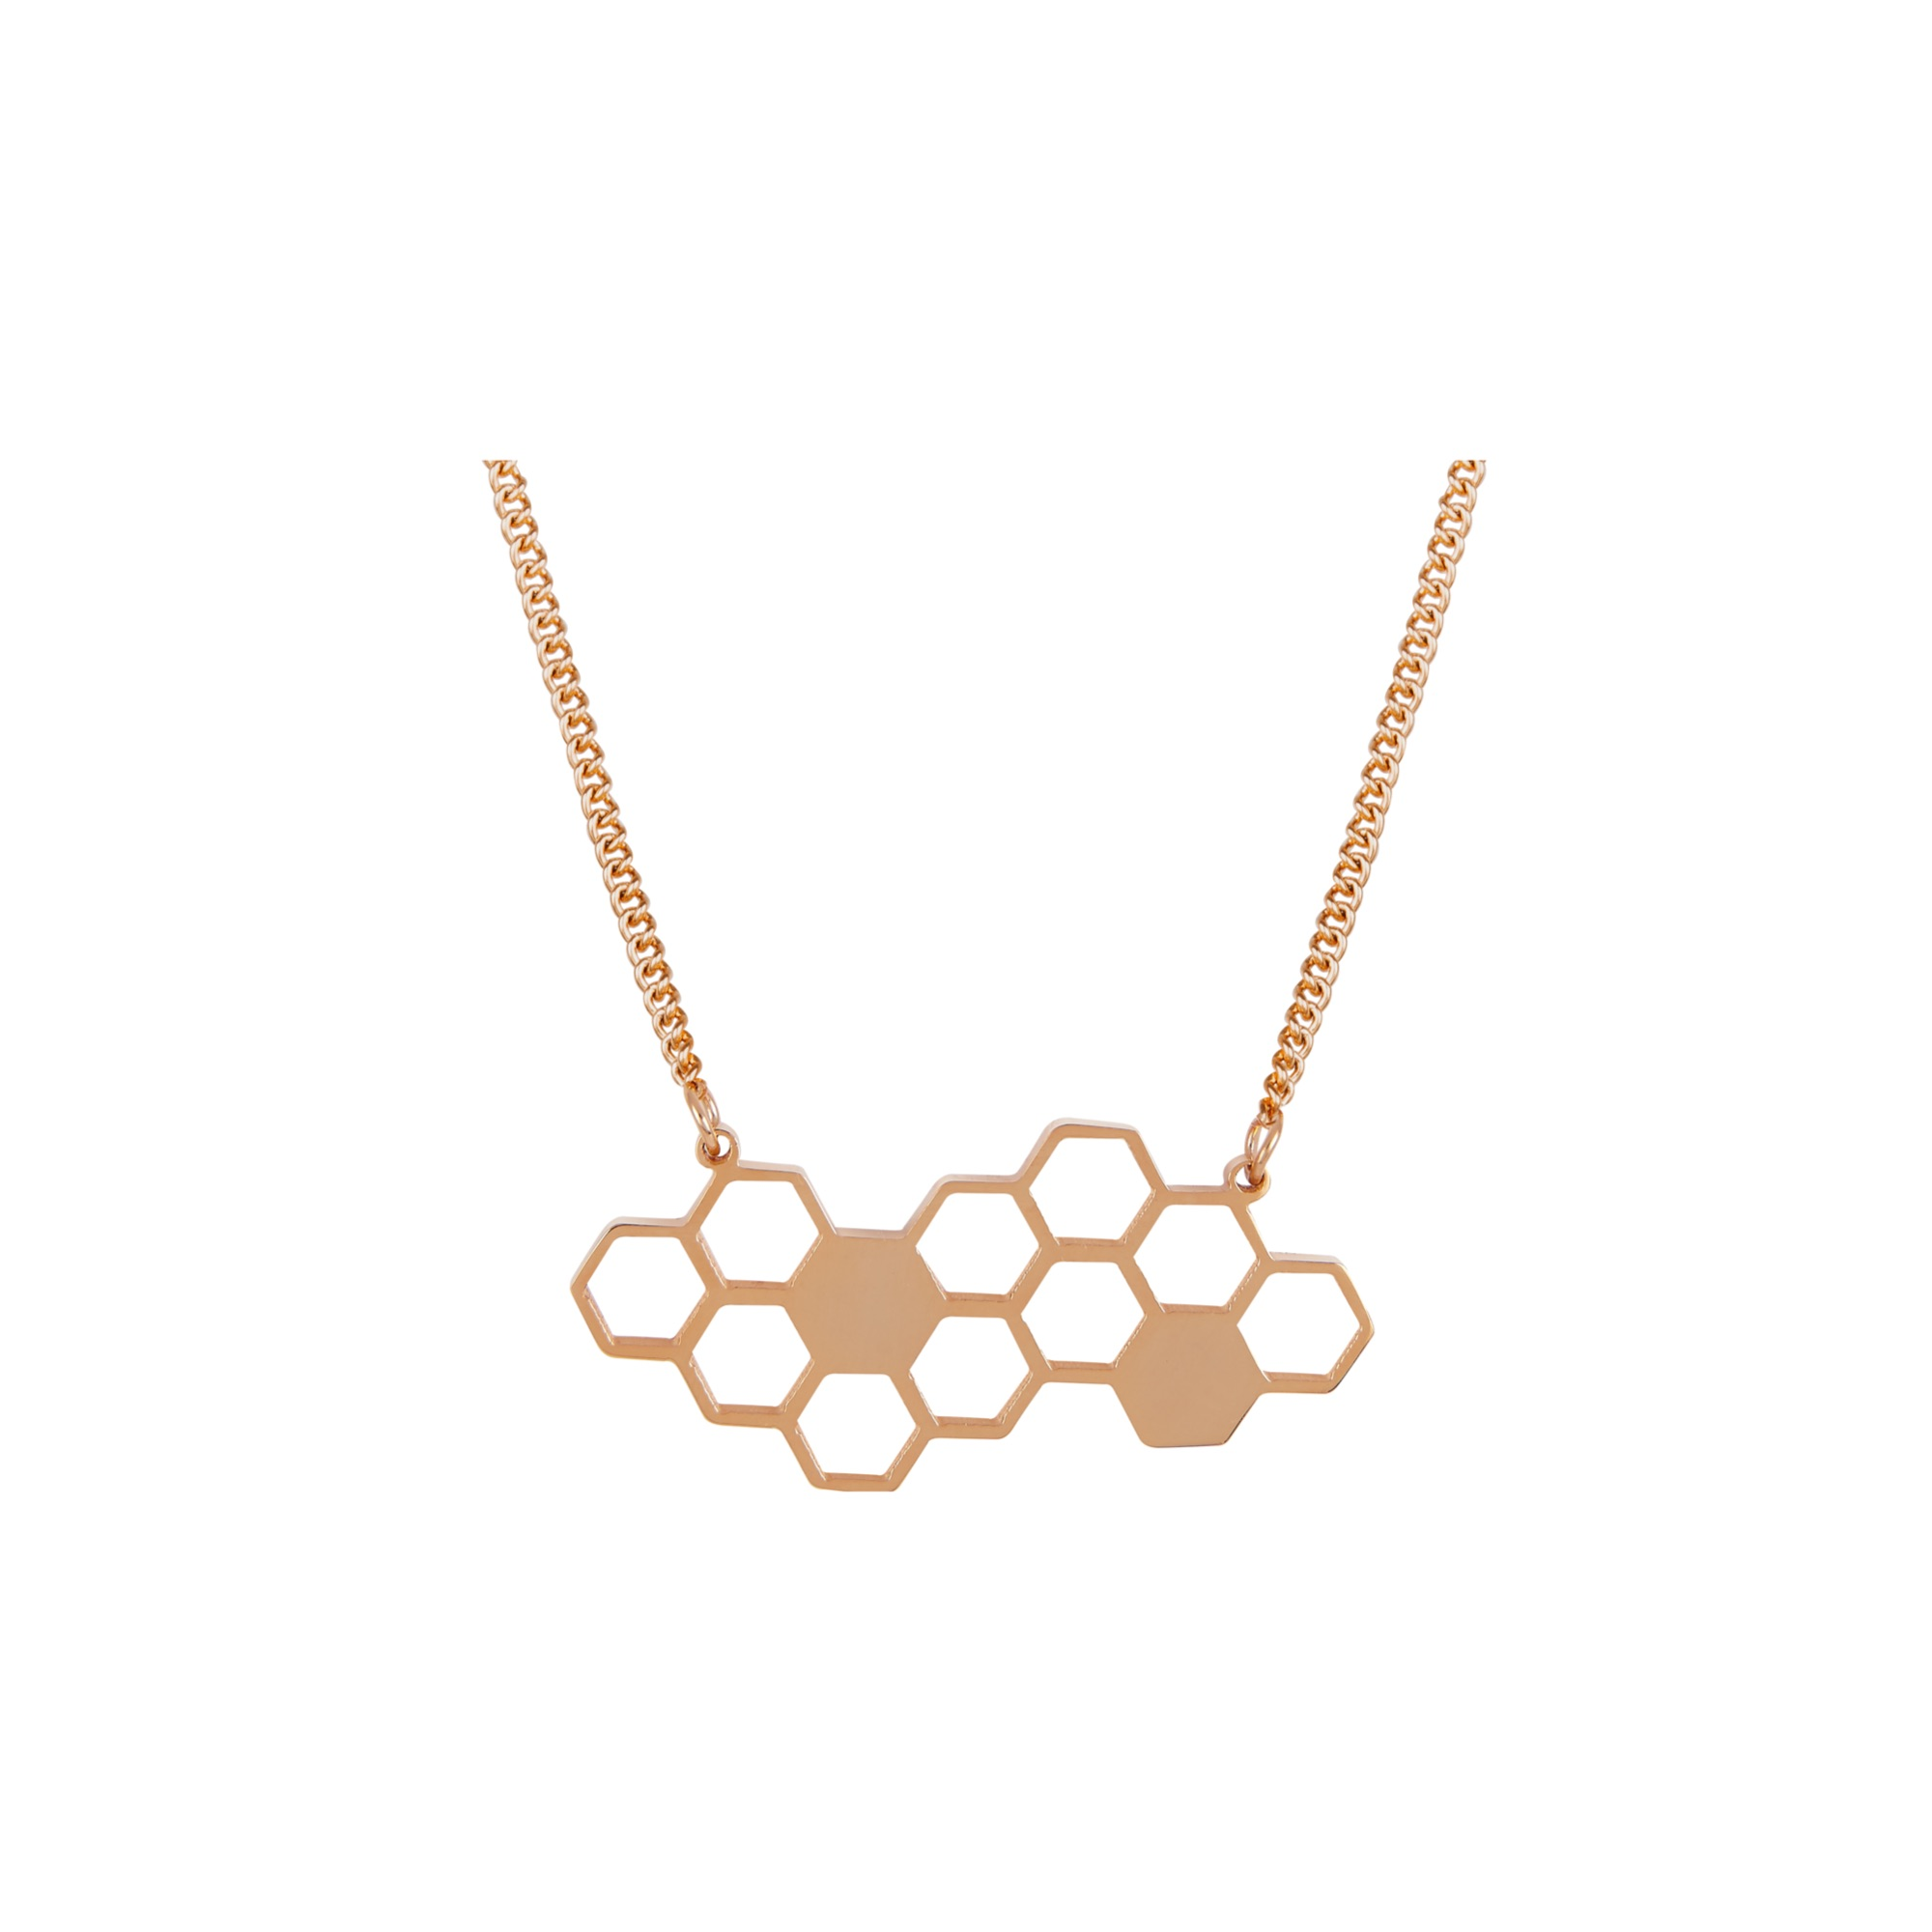 Honeycomb necklace rose